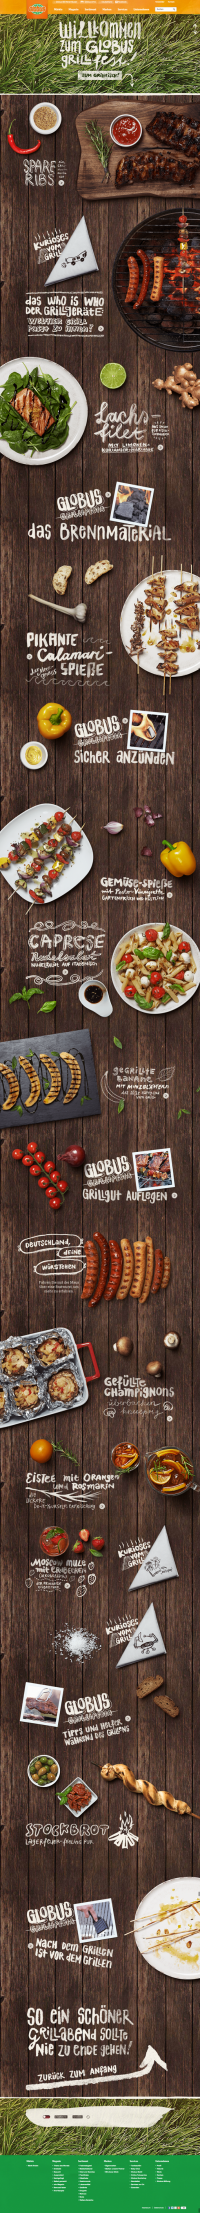 The Globus Grillfest on